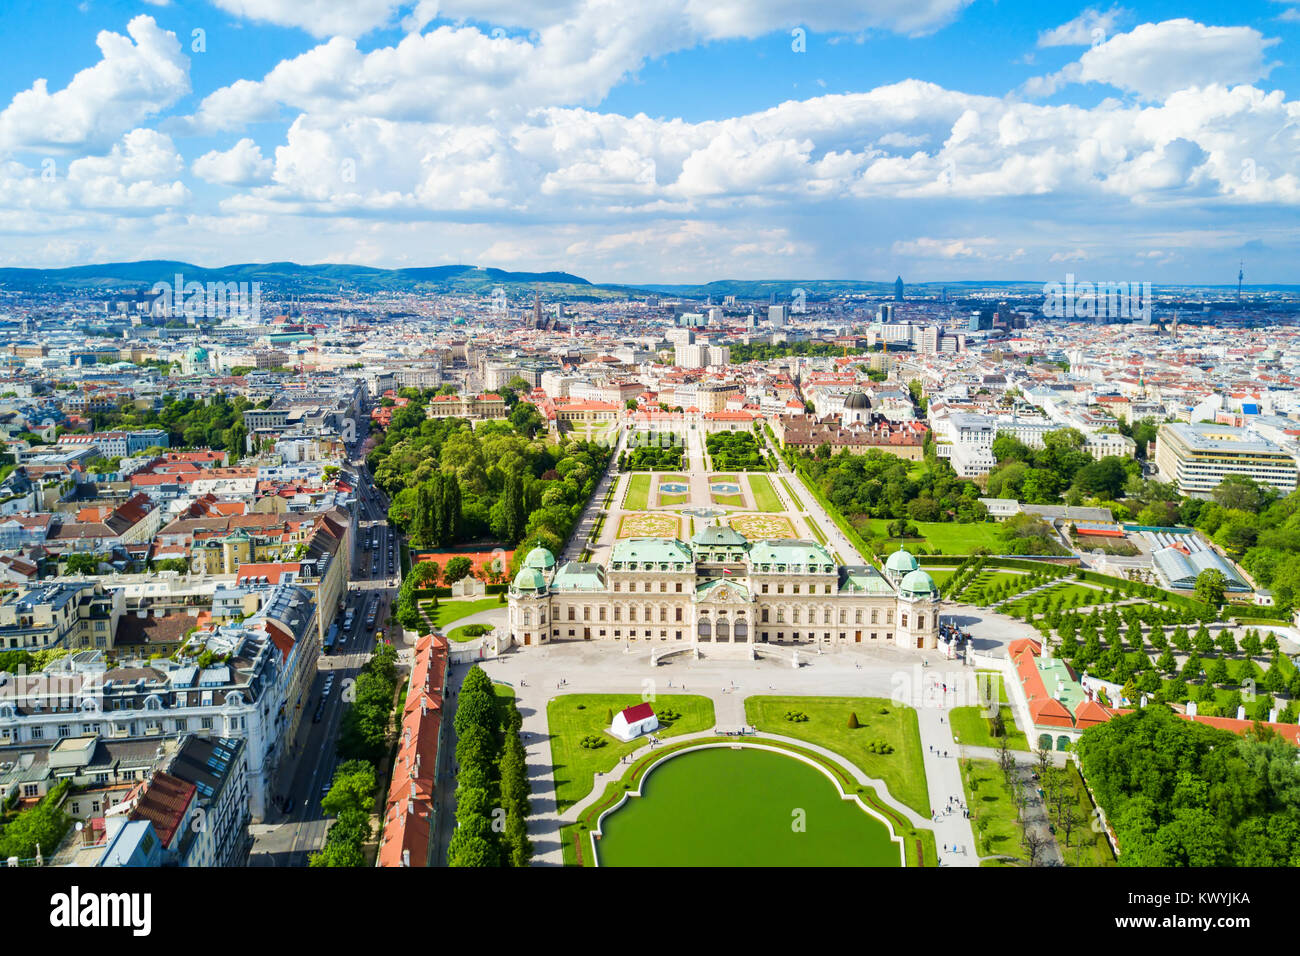 Belvedere Palace aerial panoramic view. Belvedere Palace is a historic building complex in Vienna, Austria. Belvedere - Stock Image